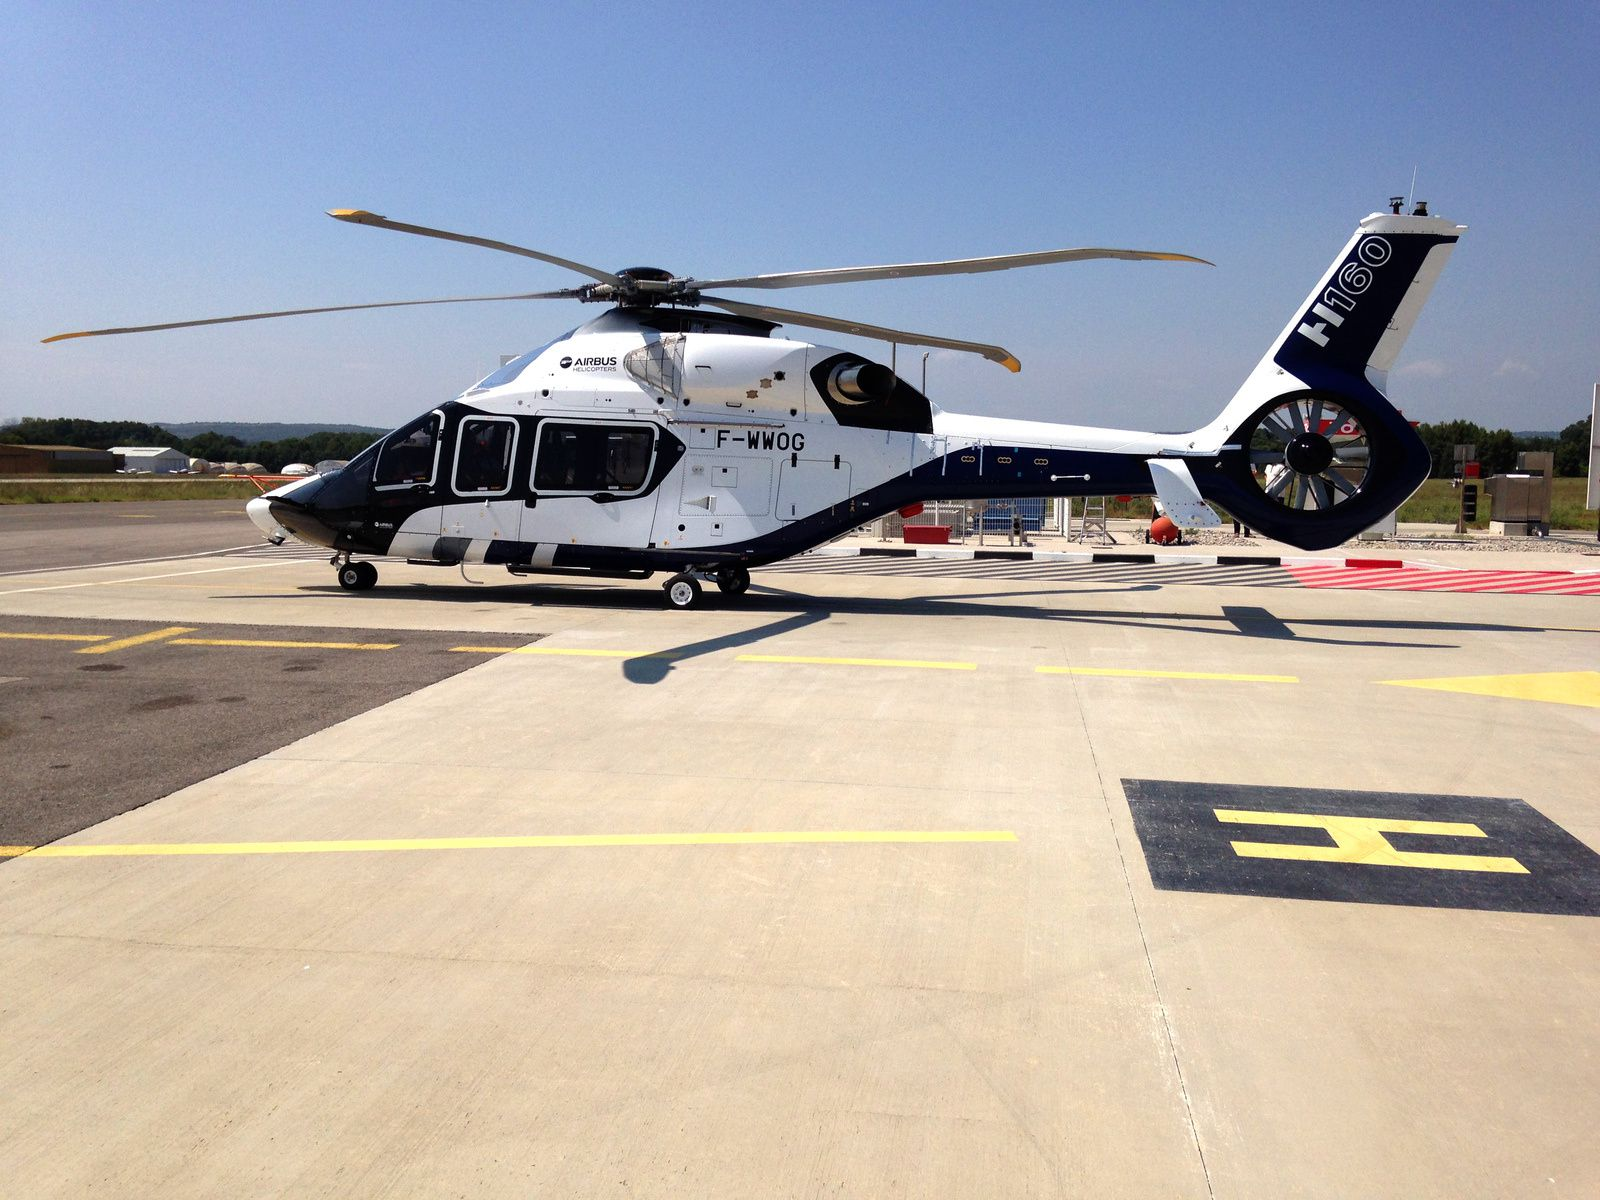 LE NOUVEL HELICO D'AIRBUS HELICOPTER A AIX